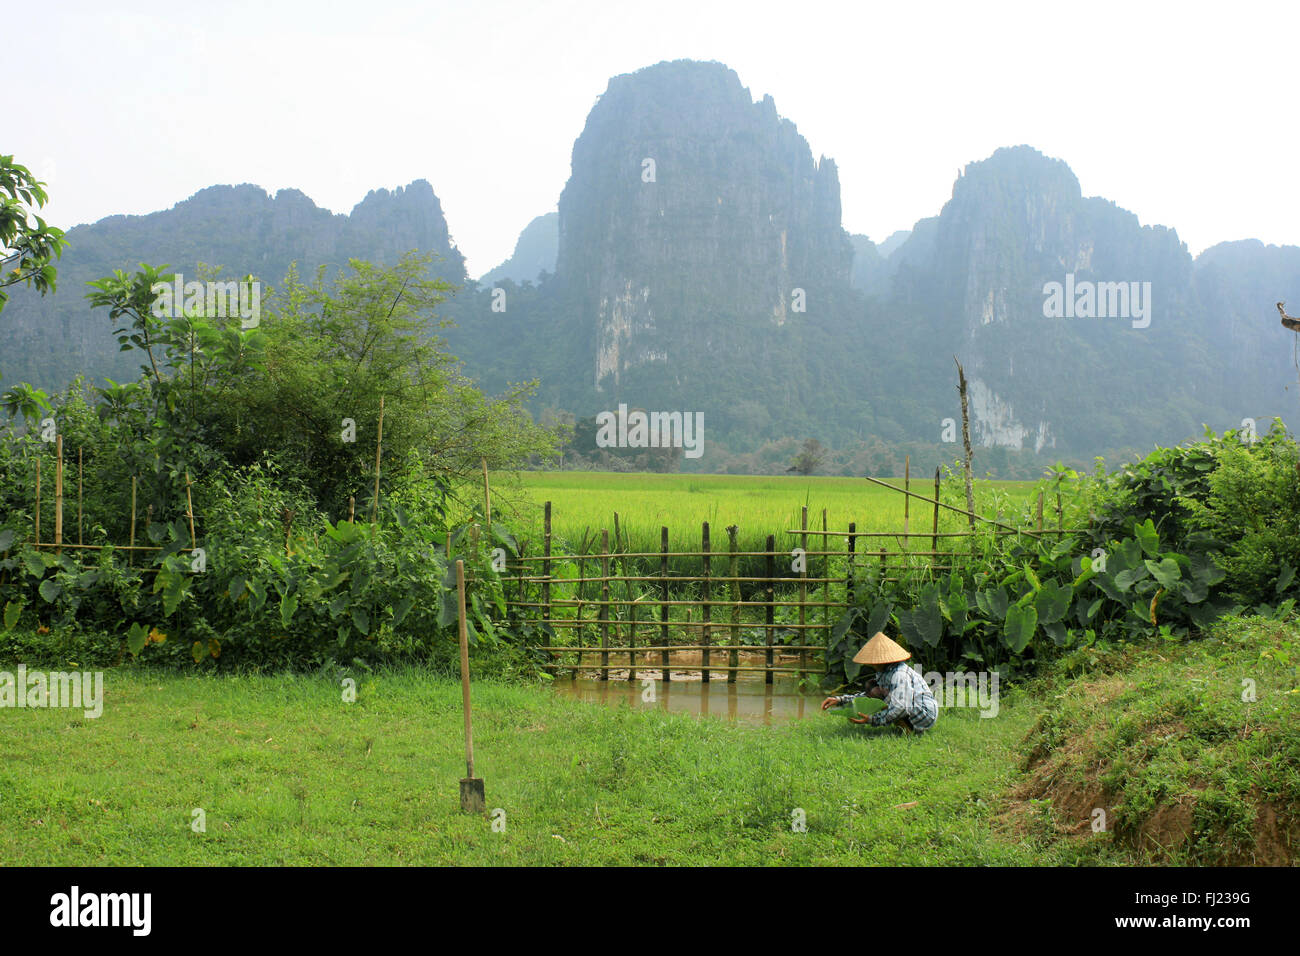 Laos pictures of people and landscapes - Stock Image